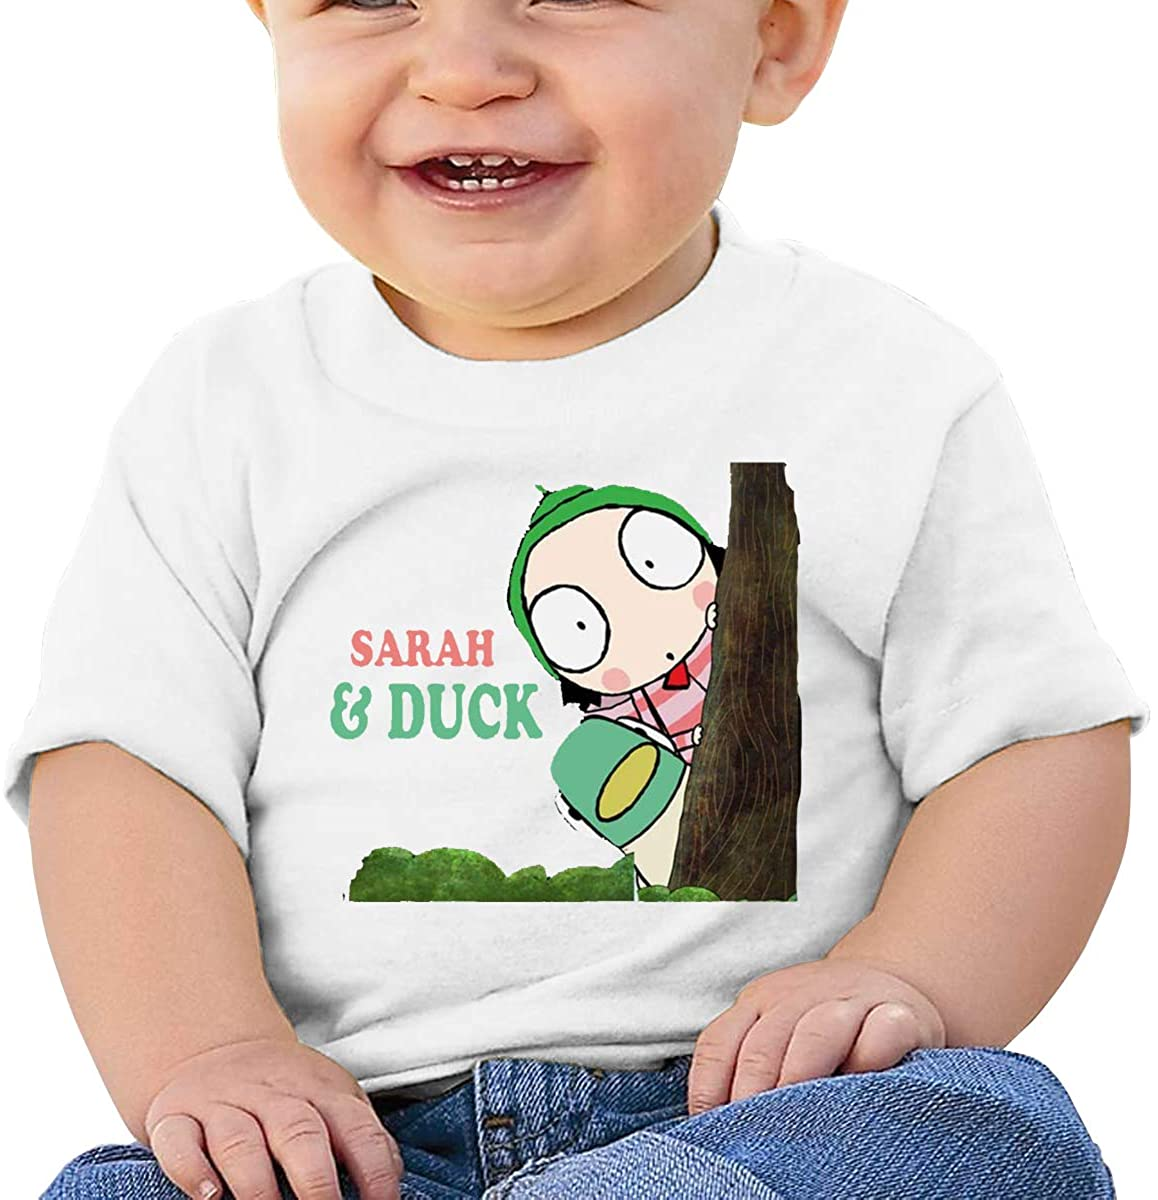 6-24 Months Boy and Girl Baby Short Sleeve T-Shirt Sarah & Duck Logo Elegant and Simple Design White